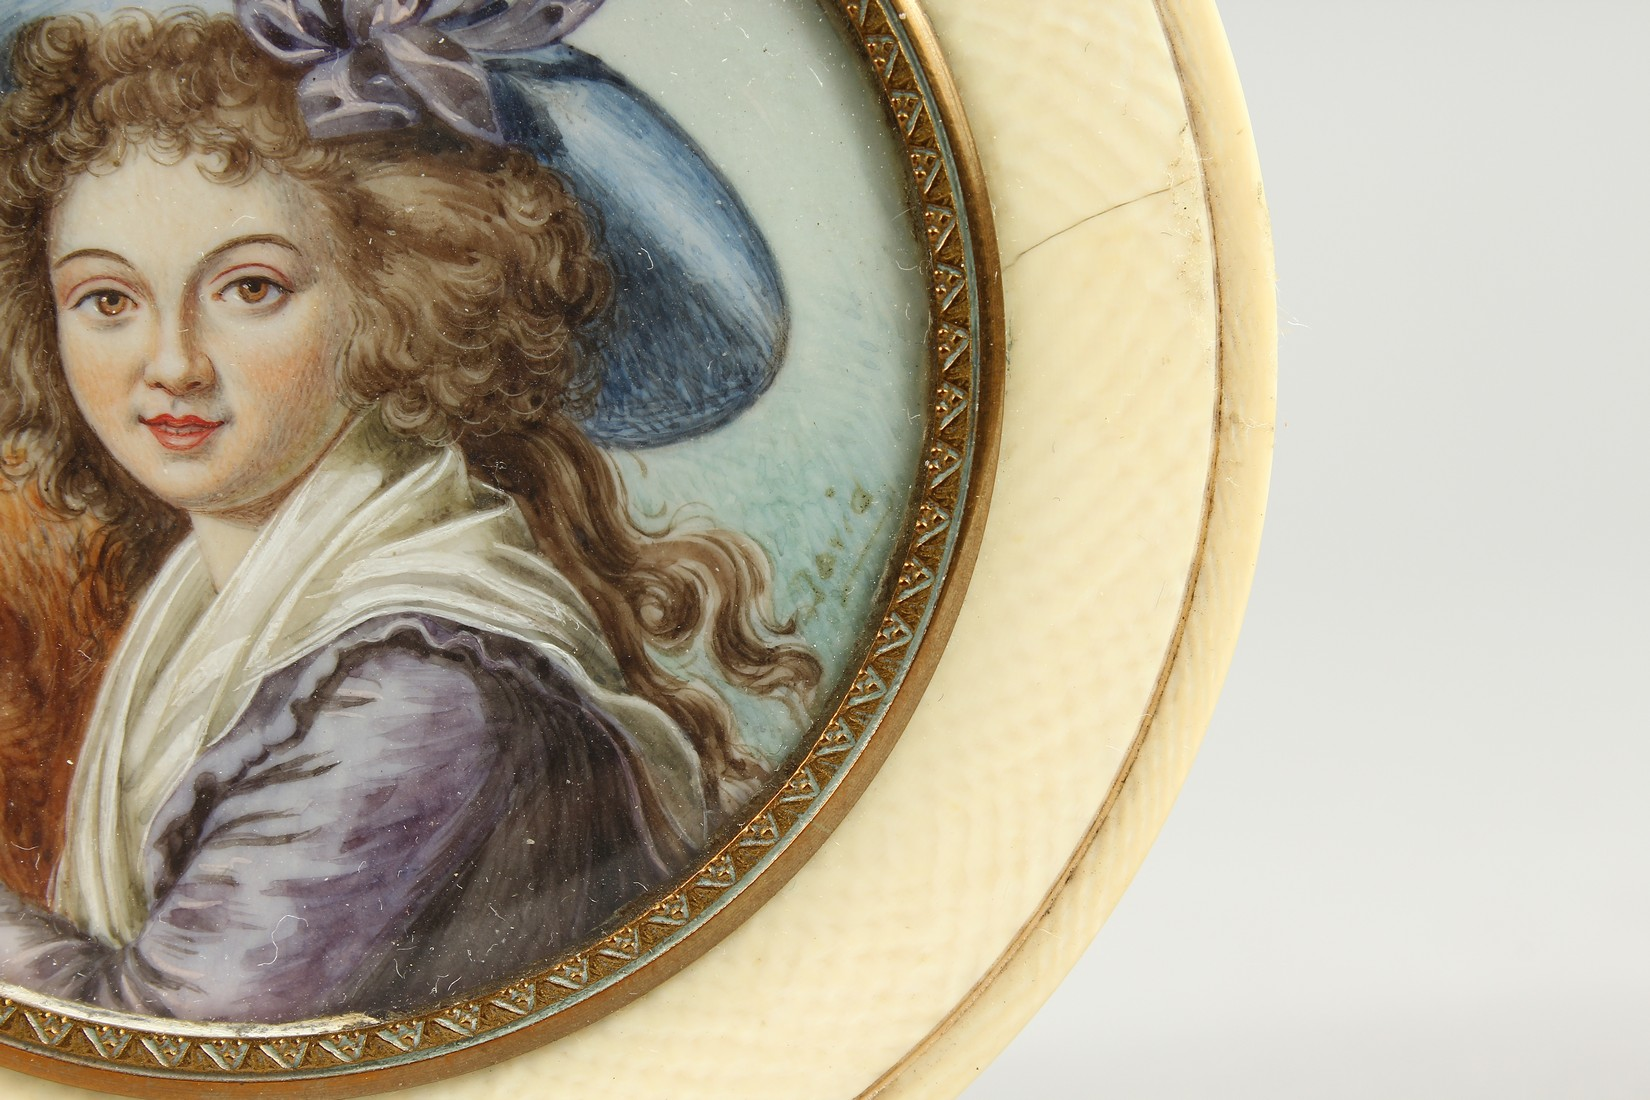 A GEORGIAN IVORY CIRCULAR BOX, the top painted with a portrait of a young lady in a plumed hat. 3ins - Image 3 of 8